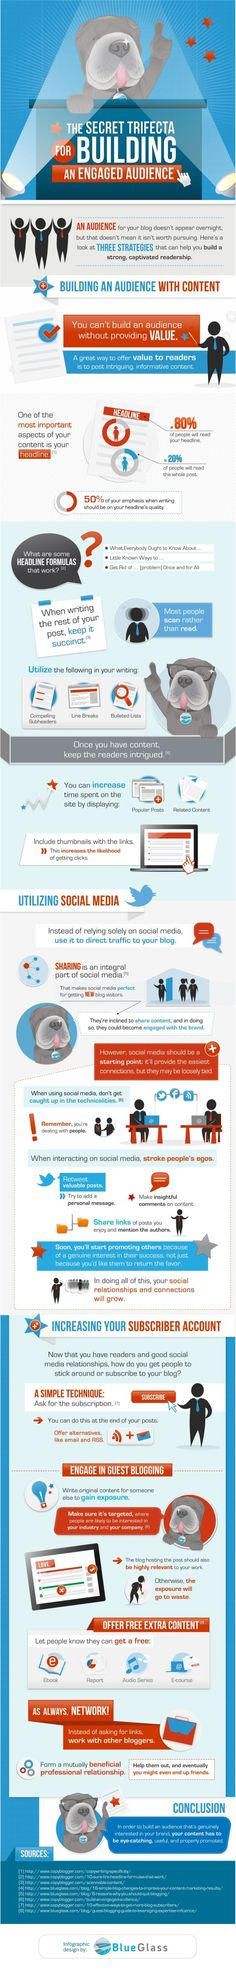 Infographic: 3 easy steps to build a bigger online audience.